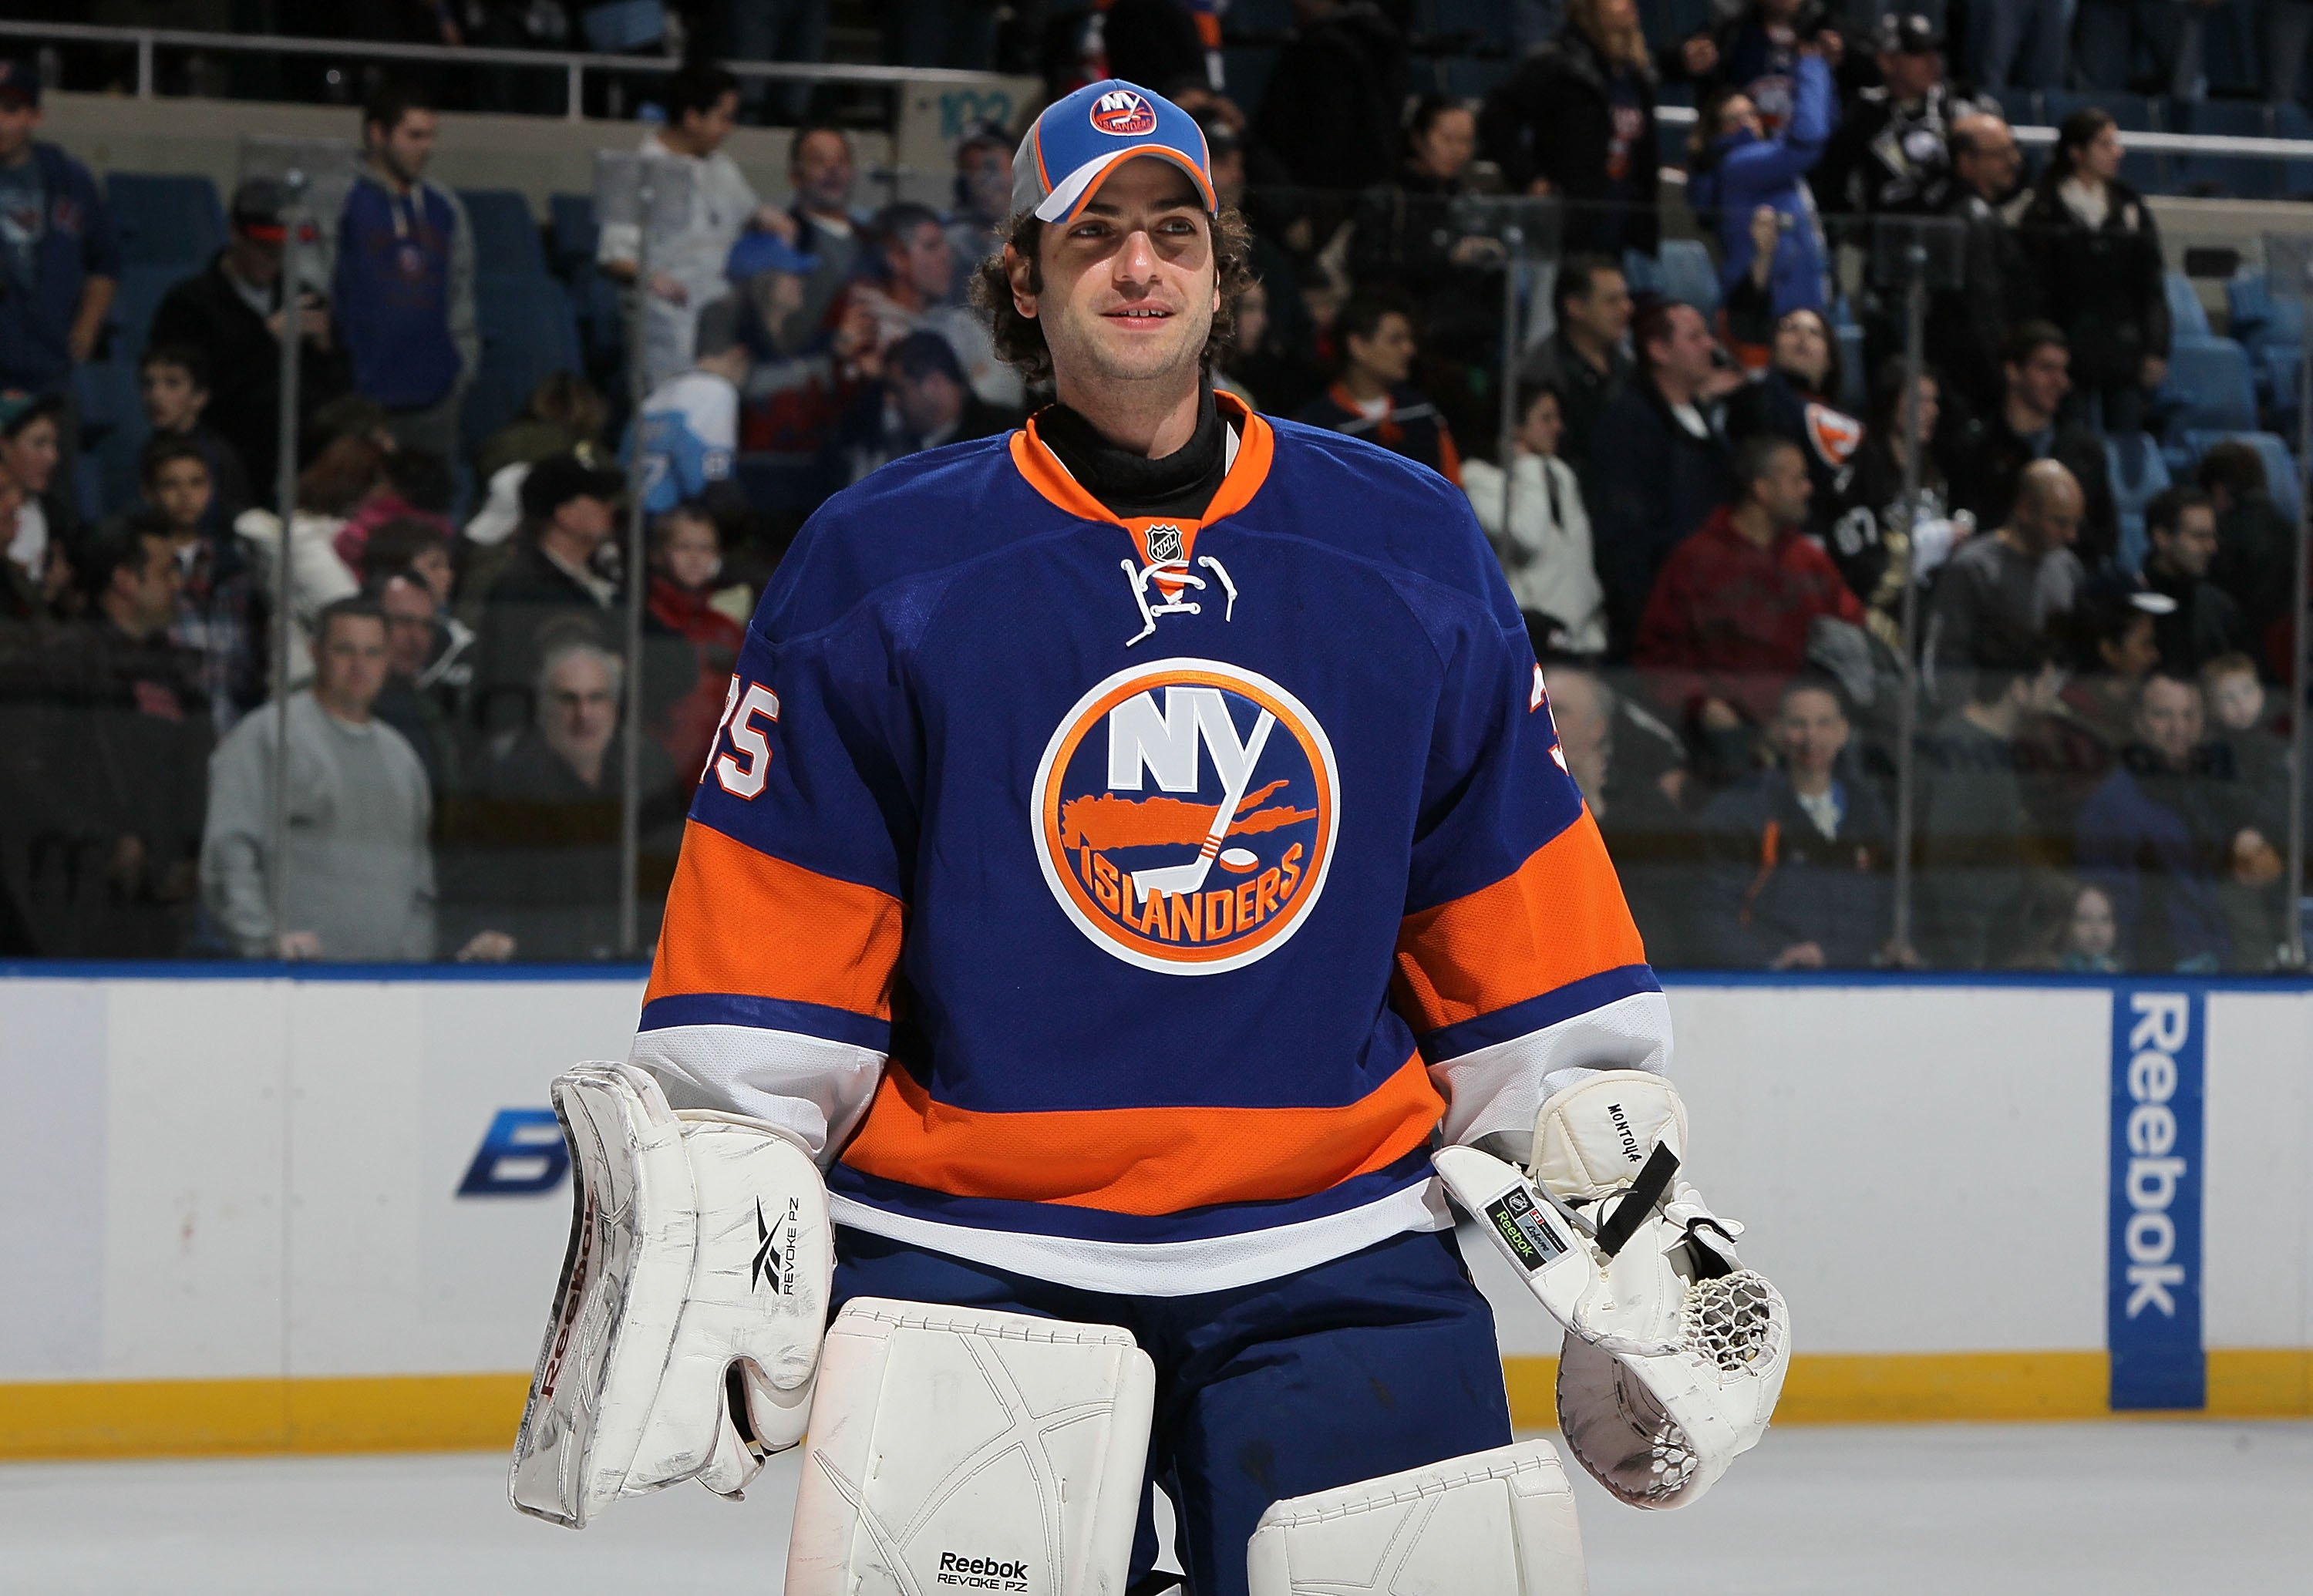 UNIONDALE, NY - FEBRUARY 11:  Al Montoya #35 of the New York Islanders looks on after defeating the Pittsburgh Penguins on February 11, 2011 at Nassau Coliseum in Uniondale, New York. The Isles defeated the Pens 9-3.  (Photo by Jim McIsaac/Getty Images)